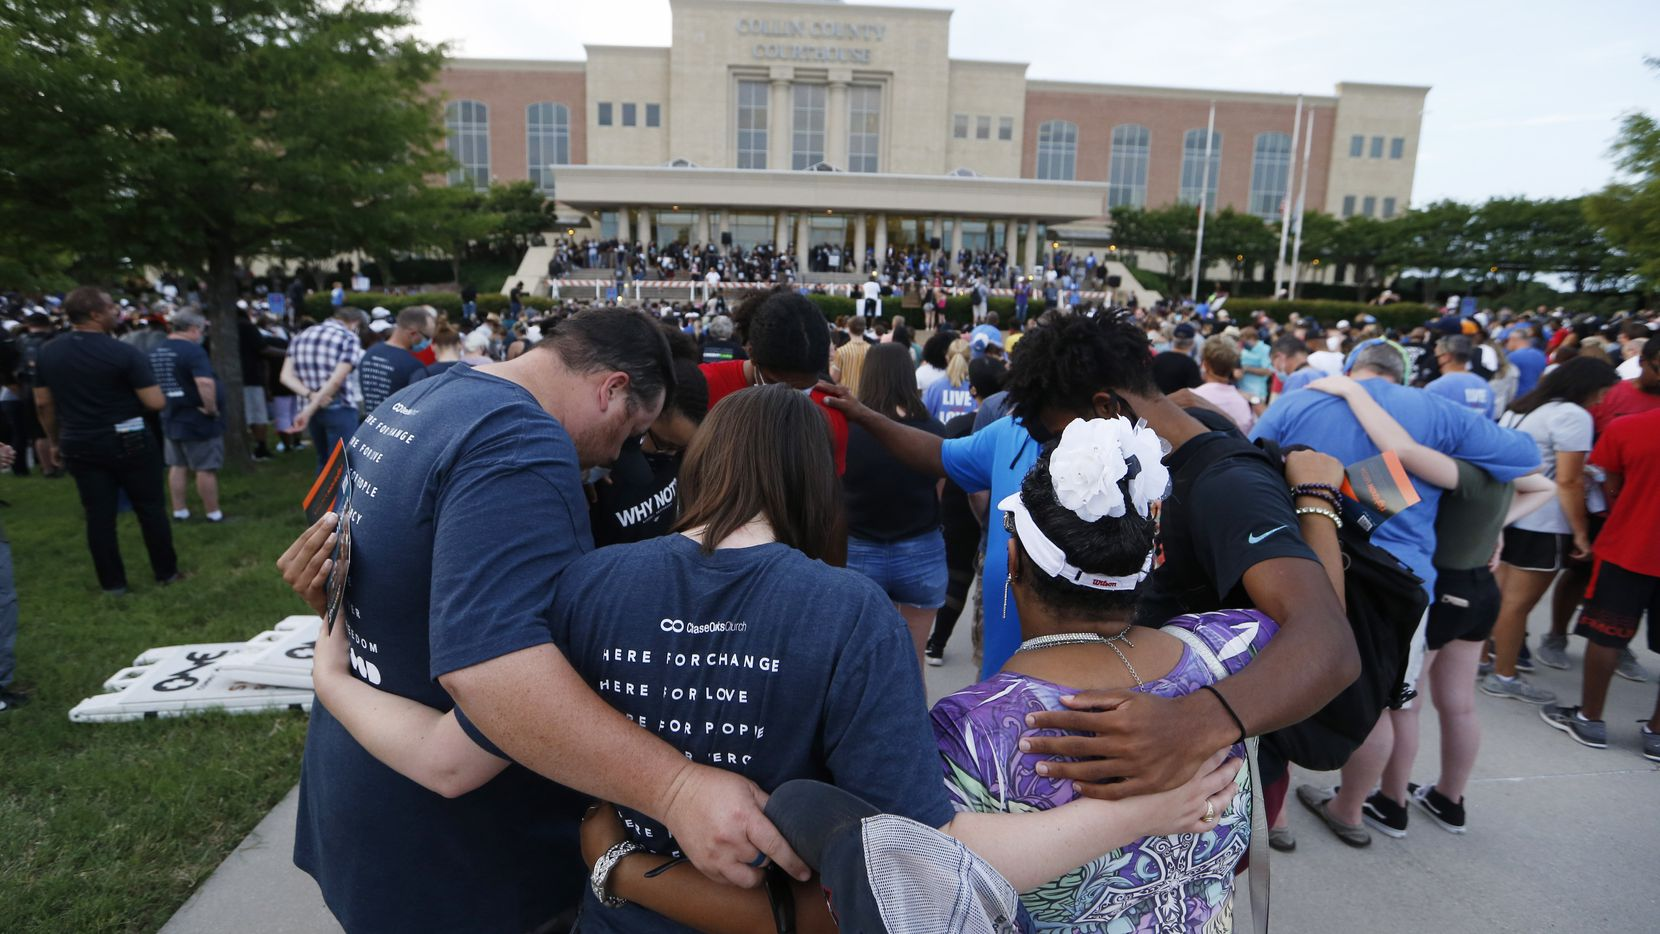 People prayed Sunday at Collin County Courthouse in McKinney as part of an event organized by local churches to spread a message of unity, justice and anti-racism.